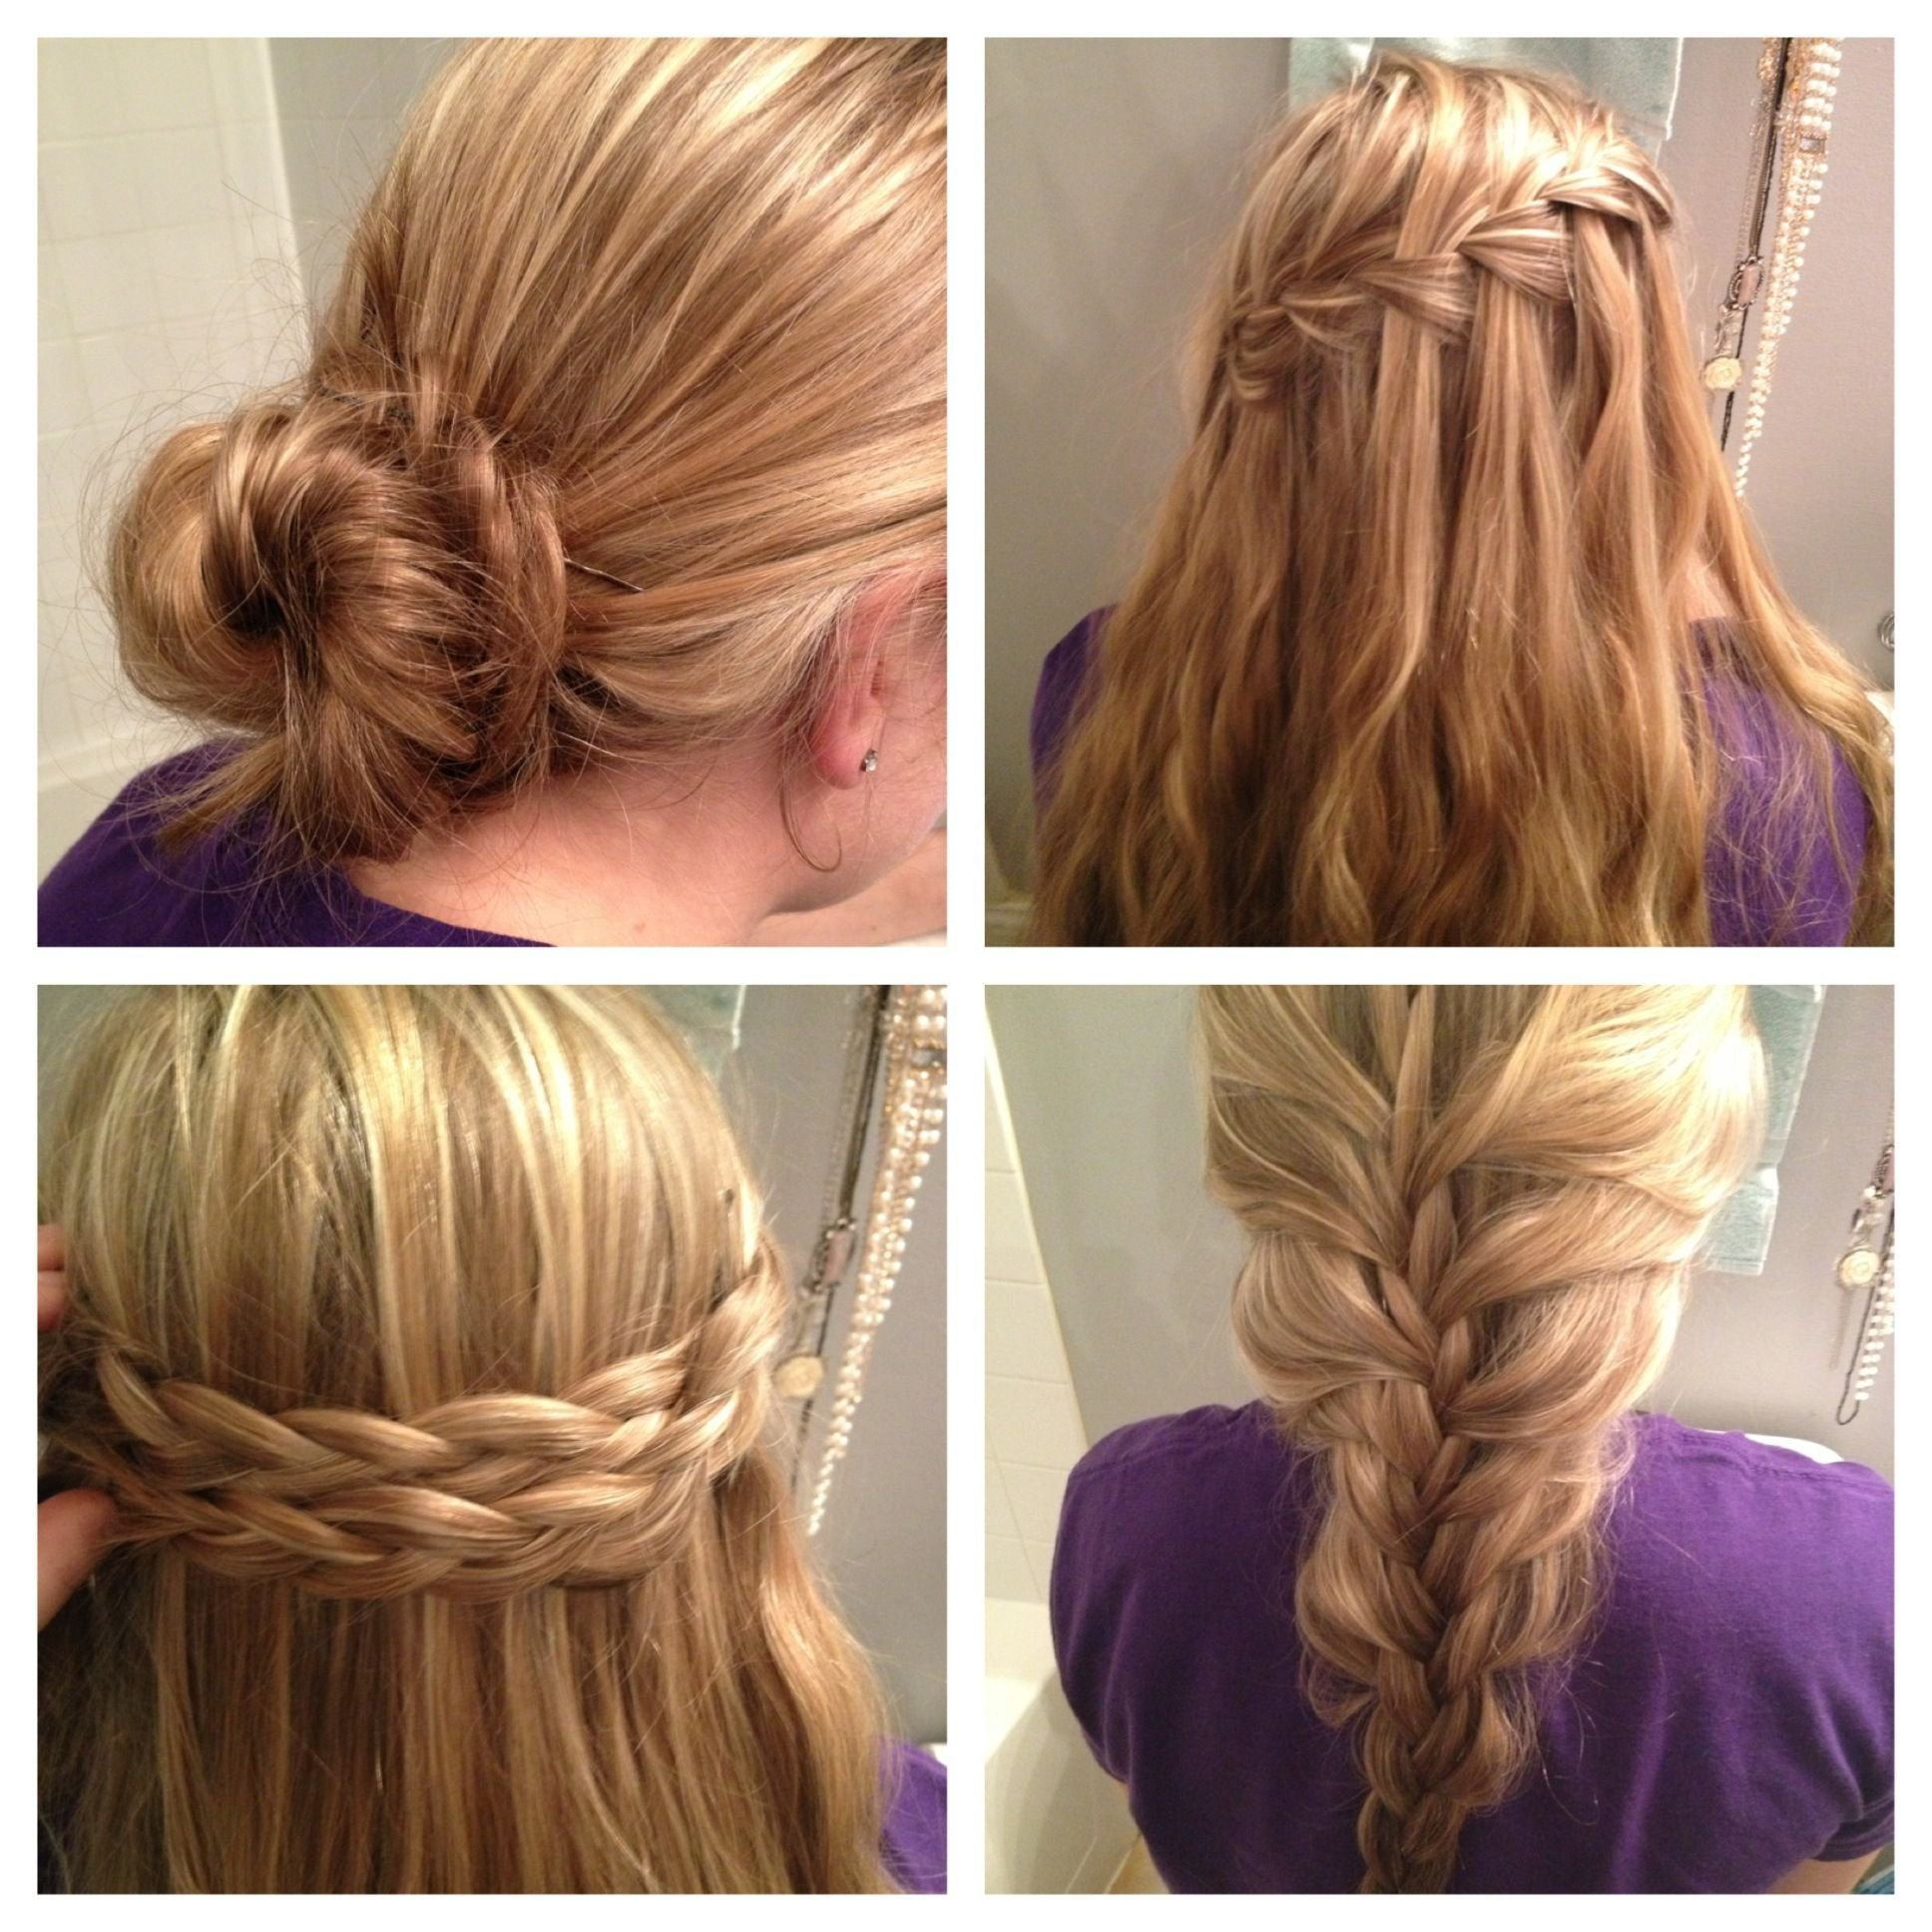 The Best Easy No Heat Hairstyles Month Without Heat Pinterest Pictures